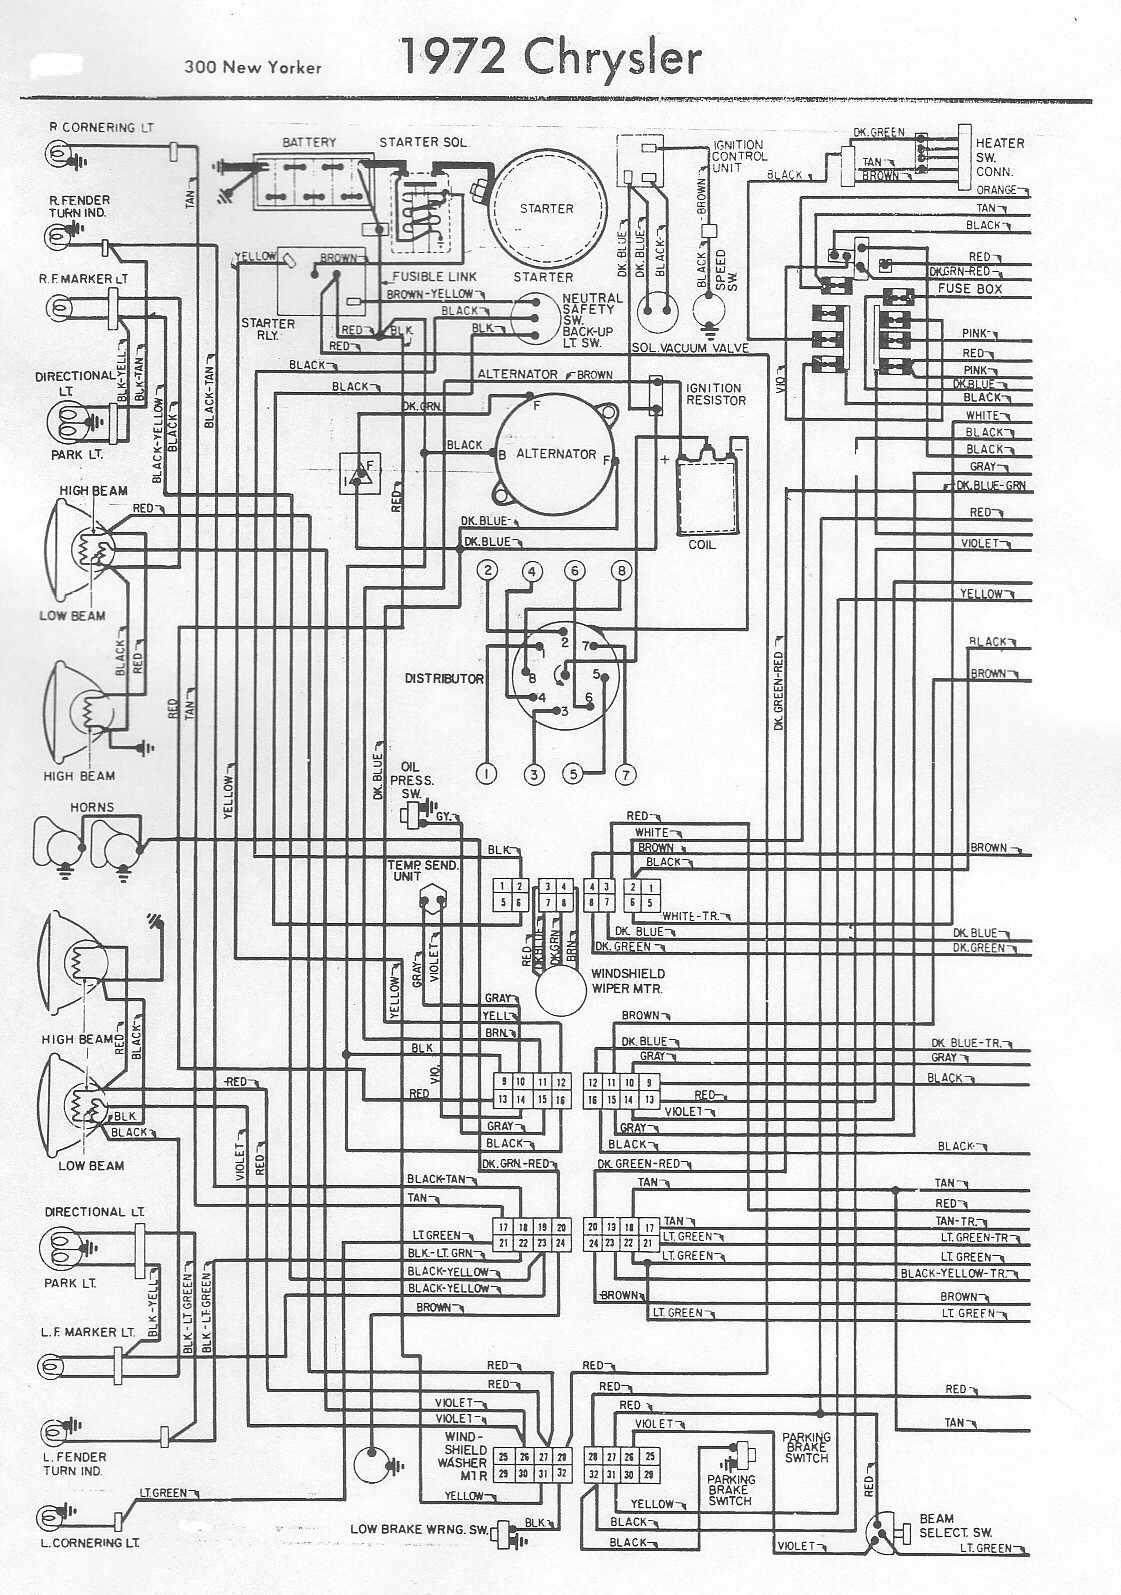 1966 Chrysler Wiring Diagram Wiring Diagram